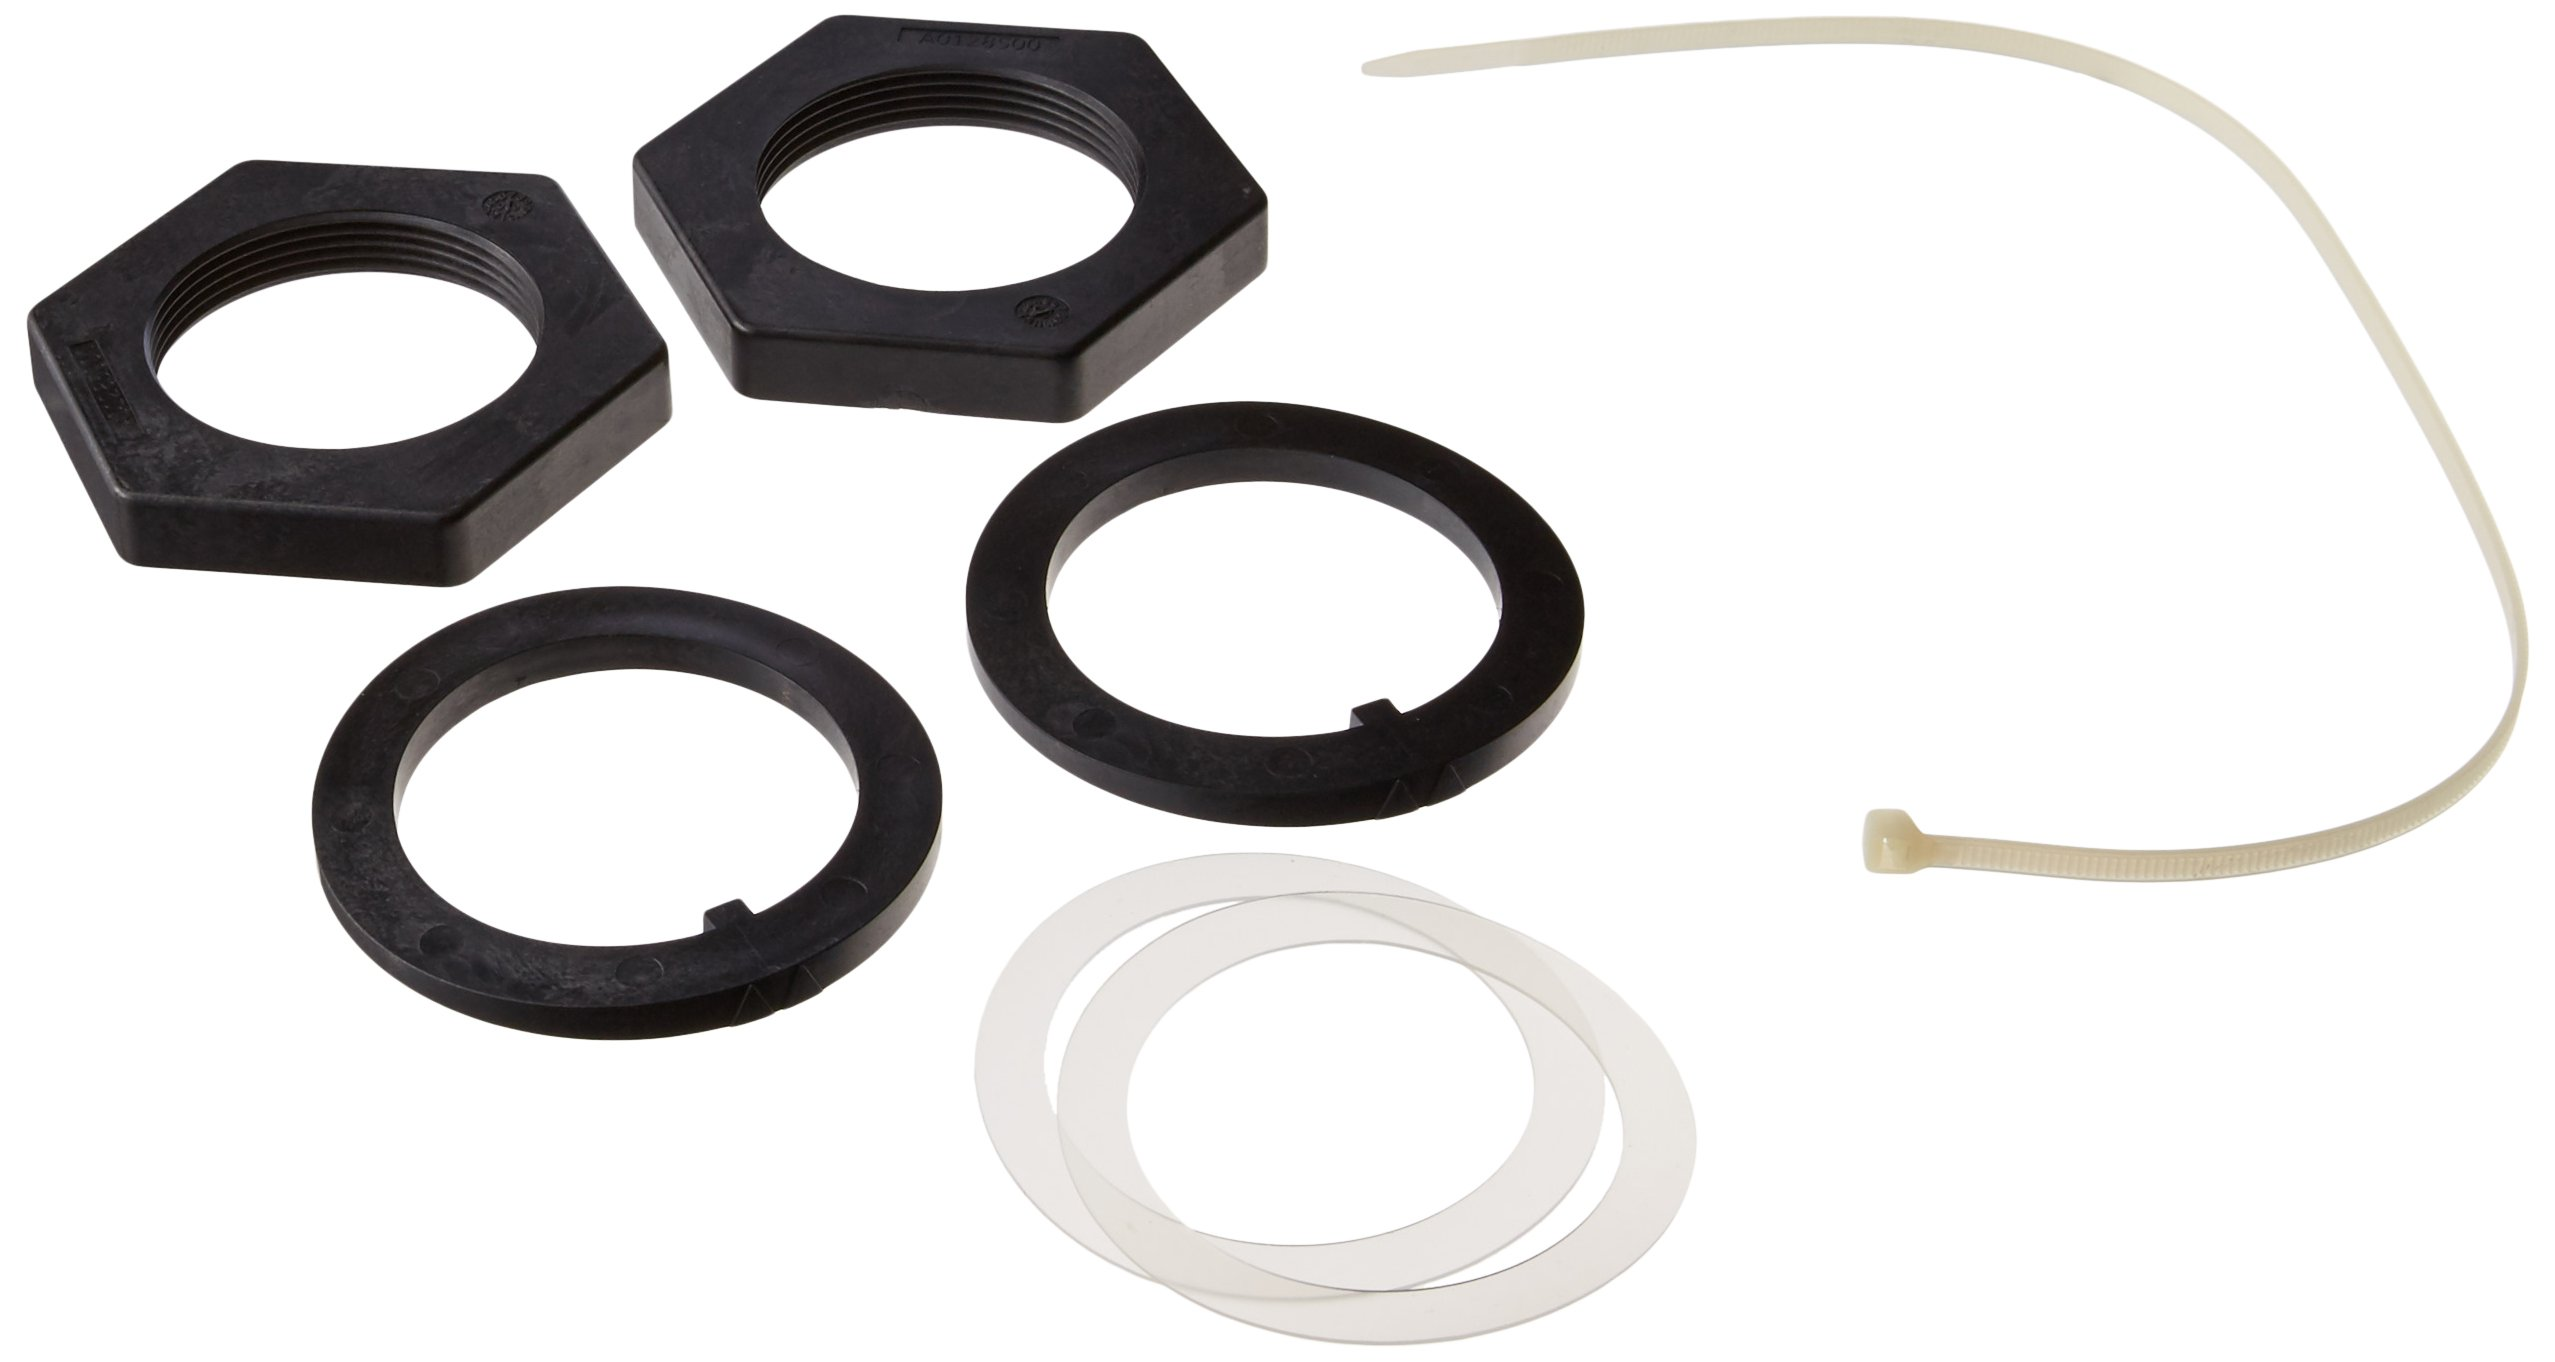 Zodiac R0487900 Nuts, Slip Ring and Inner Spacer Replacement for Zodiac Jandy JS Series JS100-SM Sand Filter by Zodiac